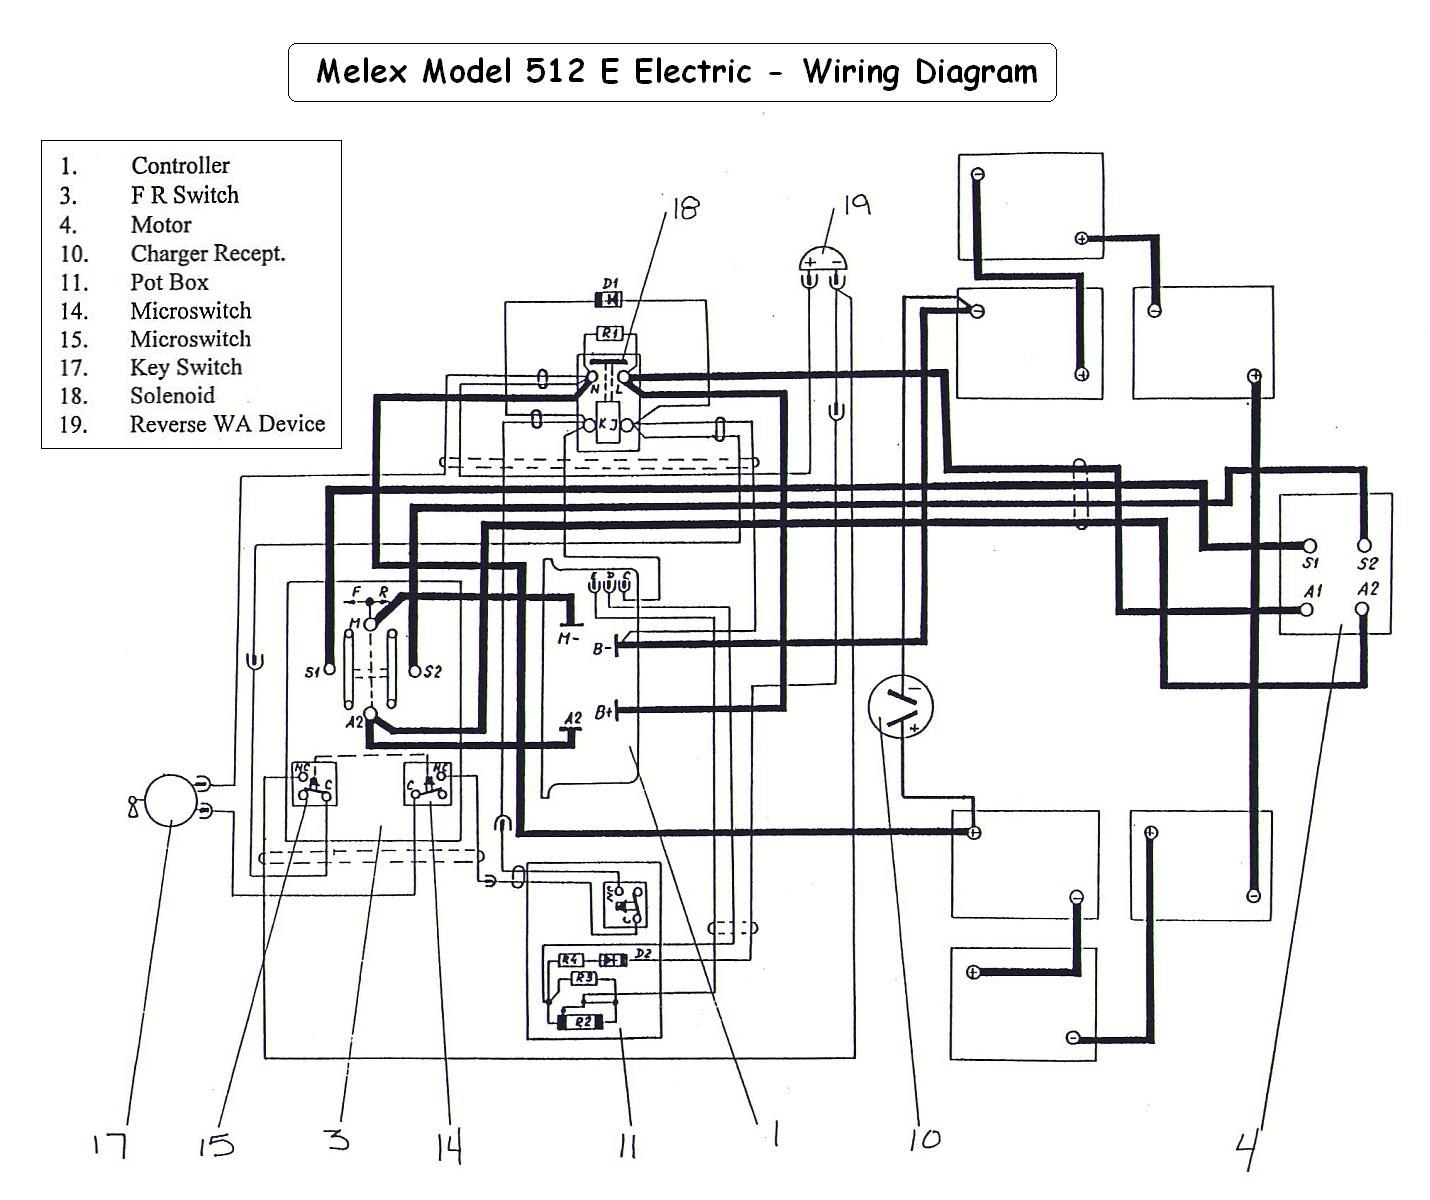 Melex512E_wiring_diagram vintagegolfcartparts com melex golf cart wiring diagram at virtualis.co